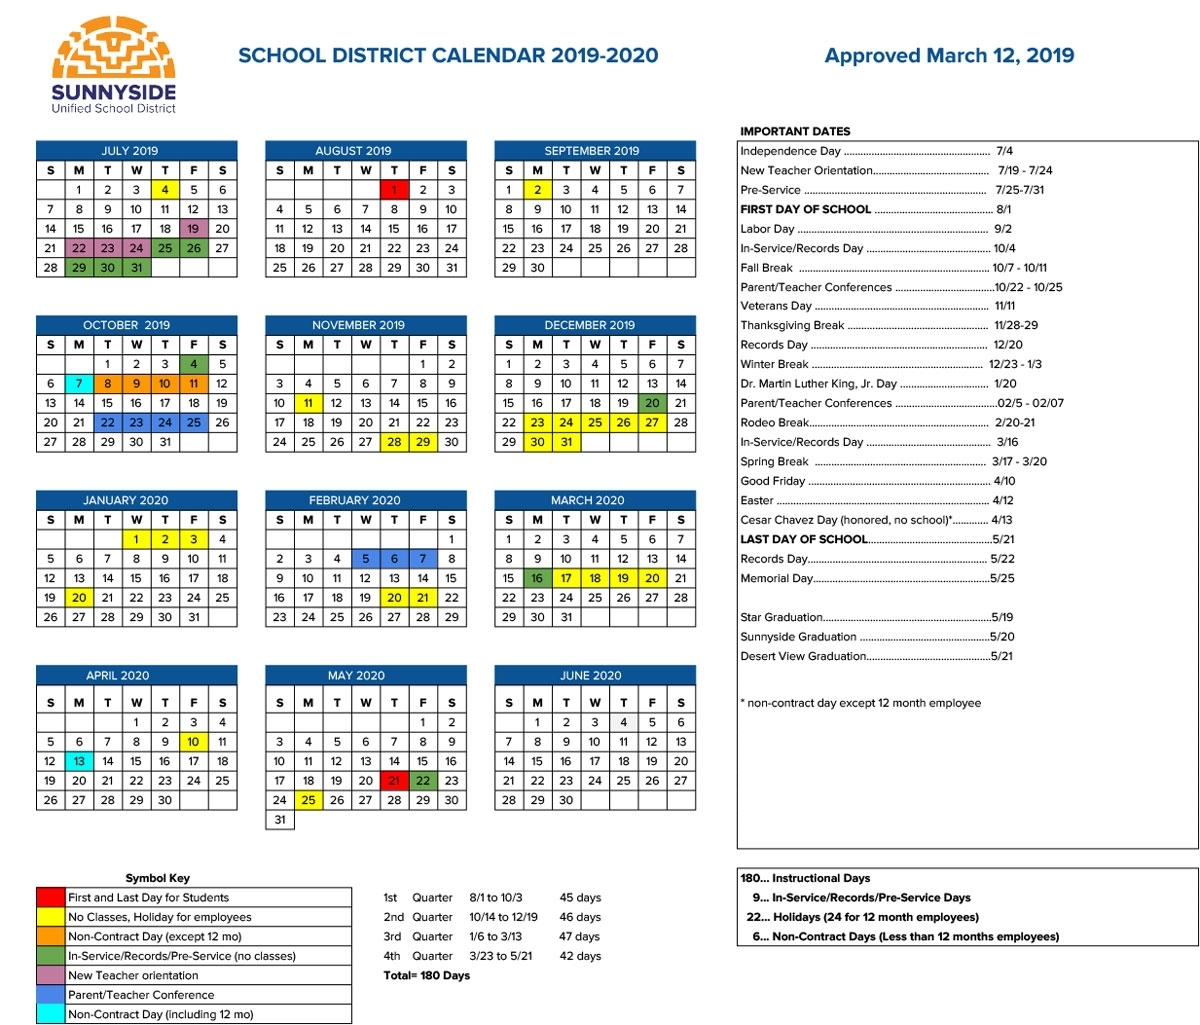 Academic Calendar | Sunnyside Unified School District